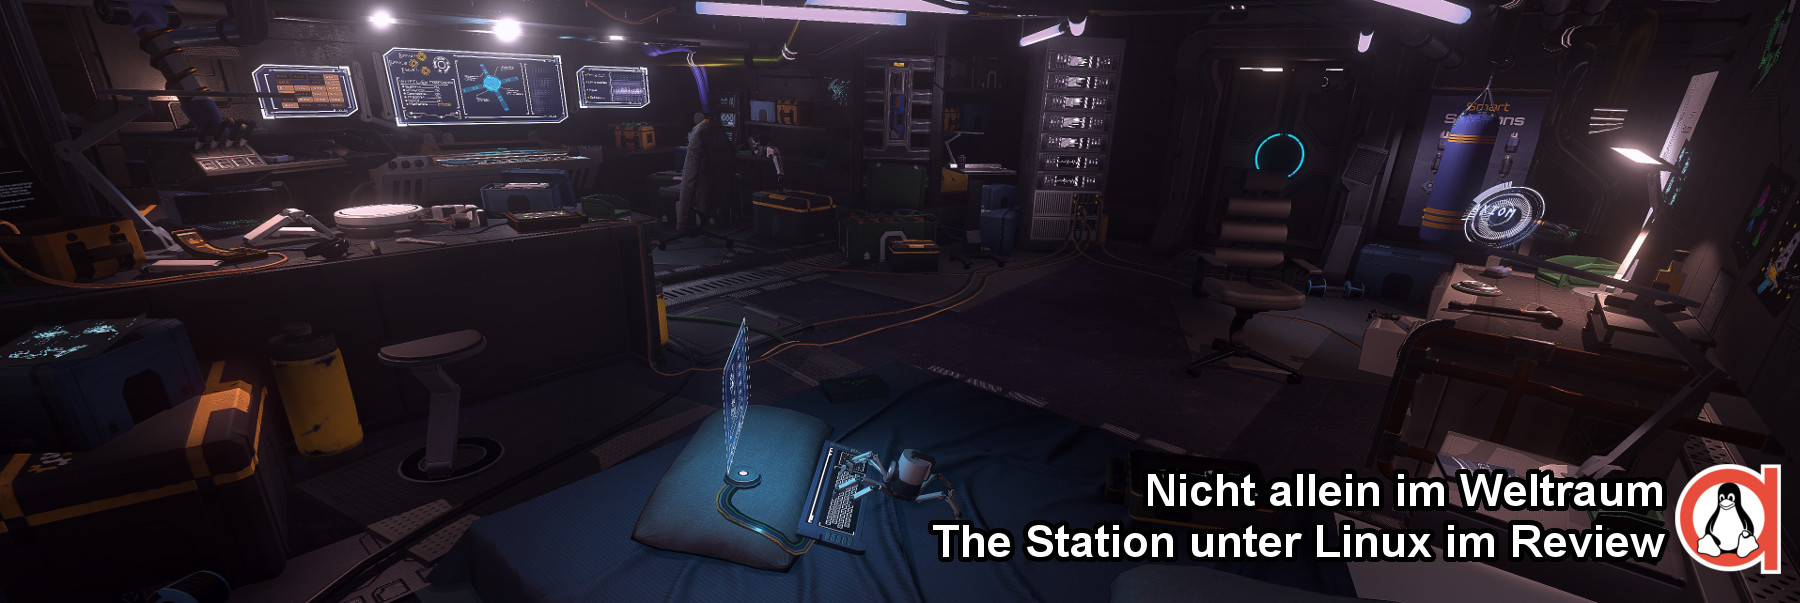 https://www.holarse-linuxgaming.de/sites/default/files/2018-02-20-1/thestation_teaser.jpg